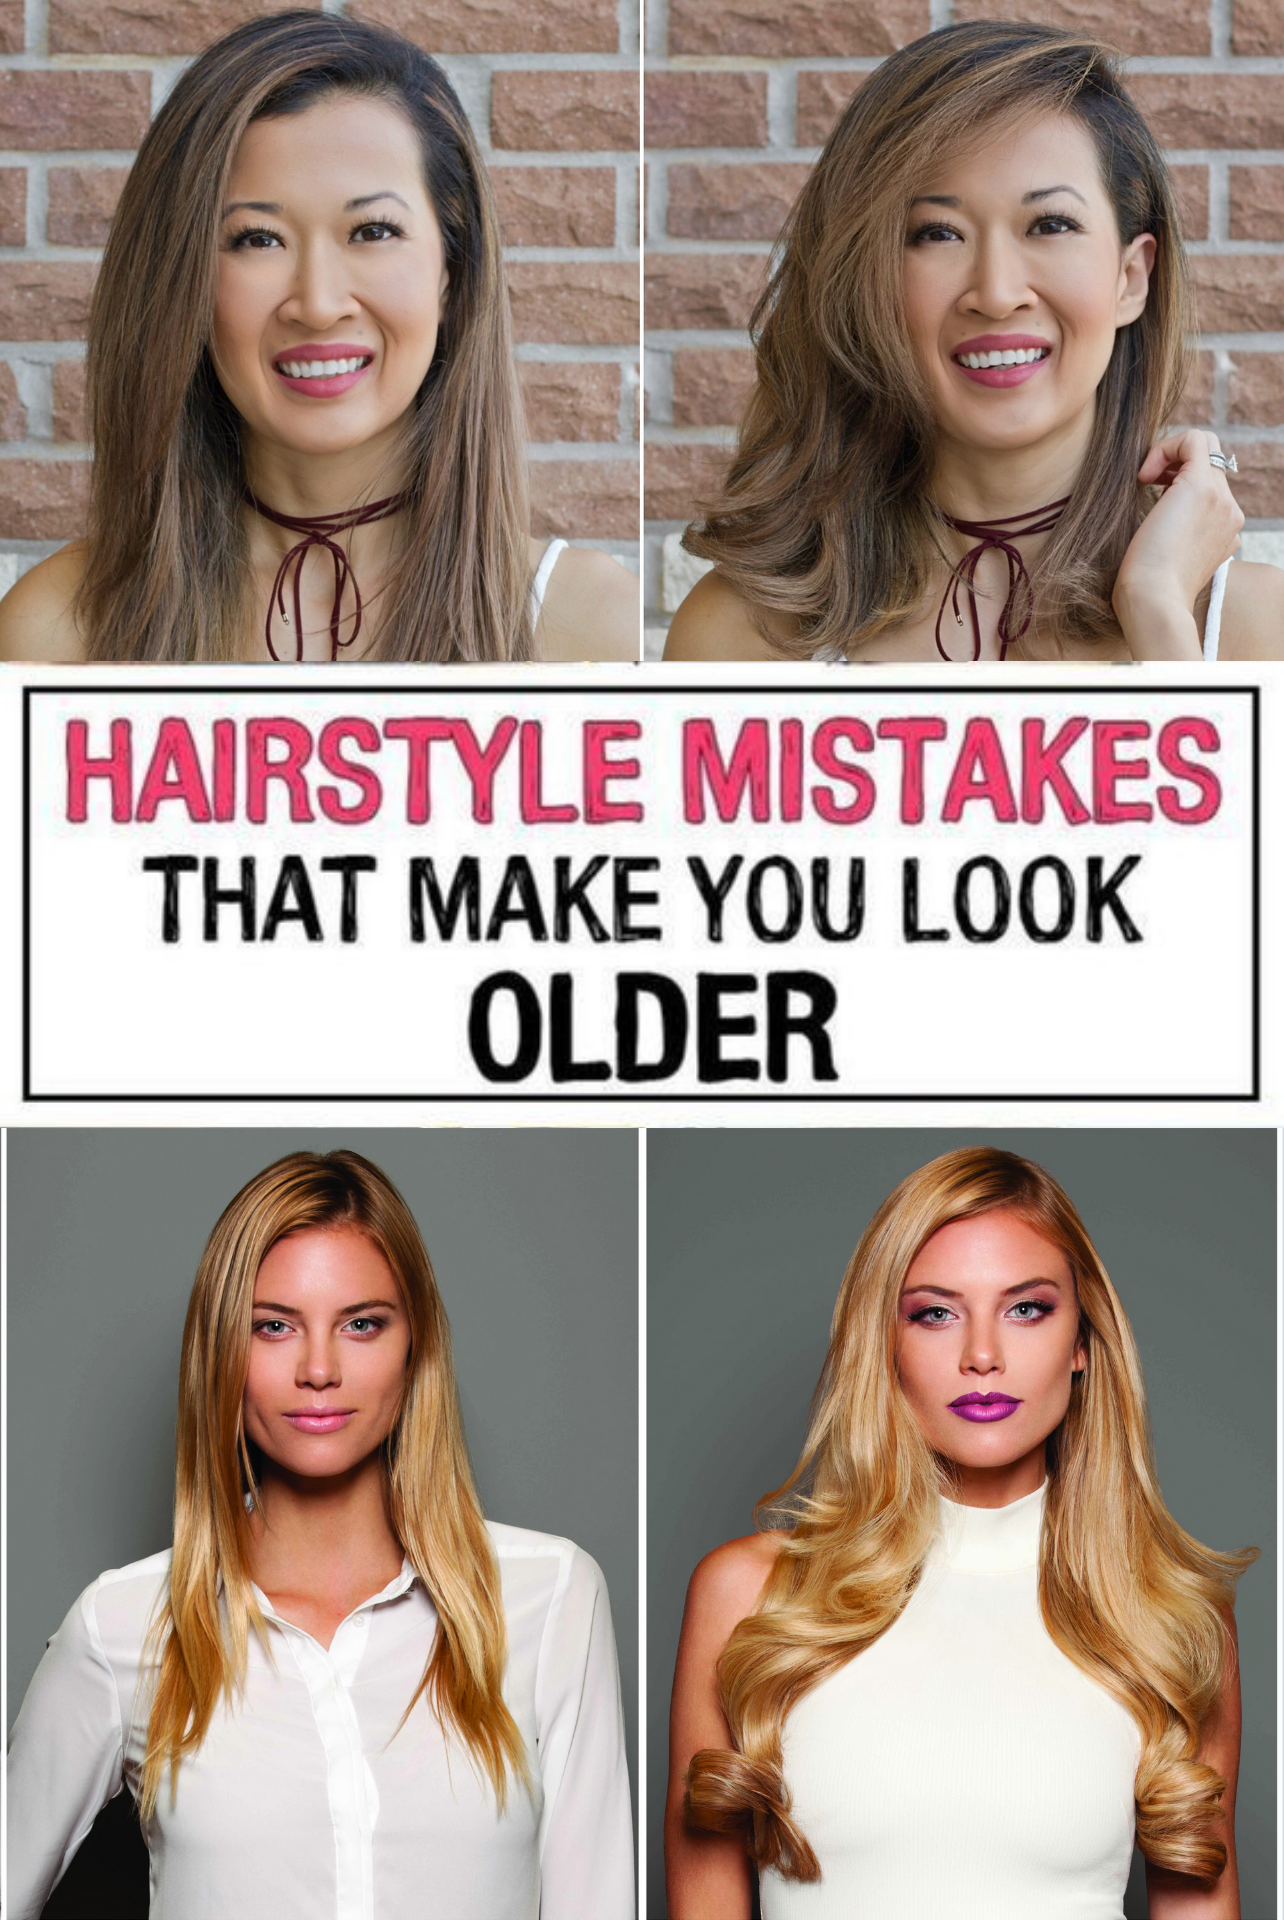 37 Hairstyle Mistakes That Are Aging You In 2020 Hair Mistakes Hair Advice Mom Hairstyles